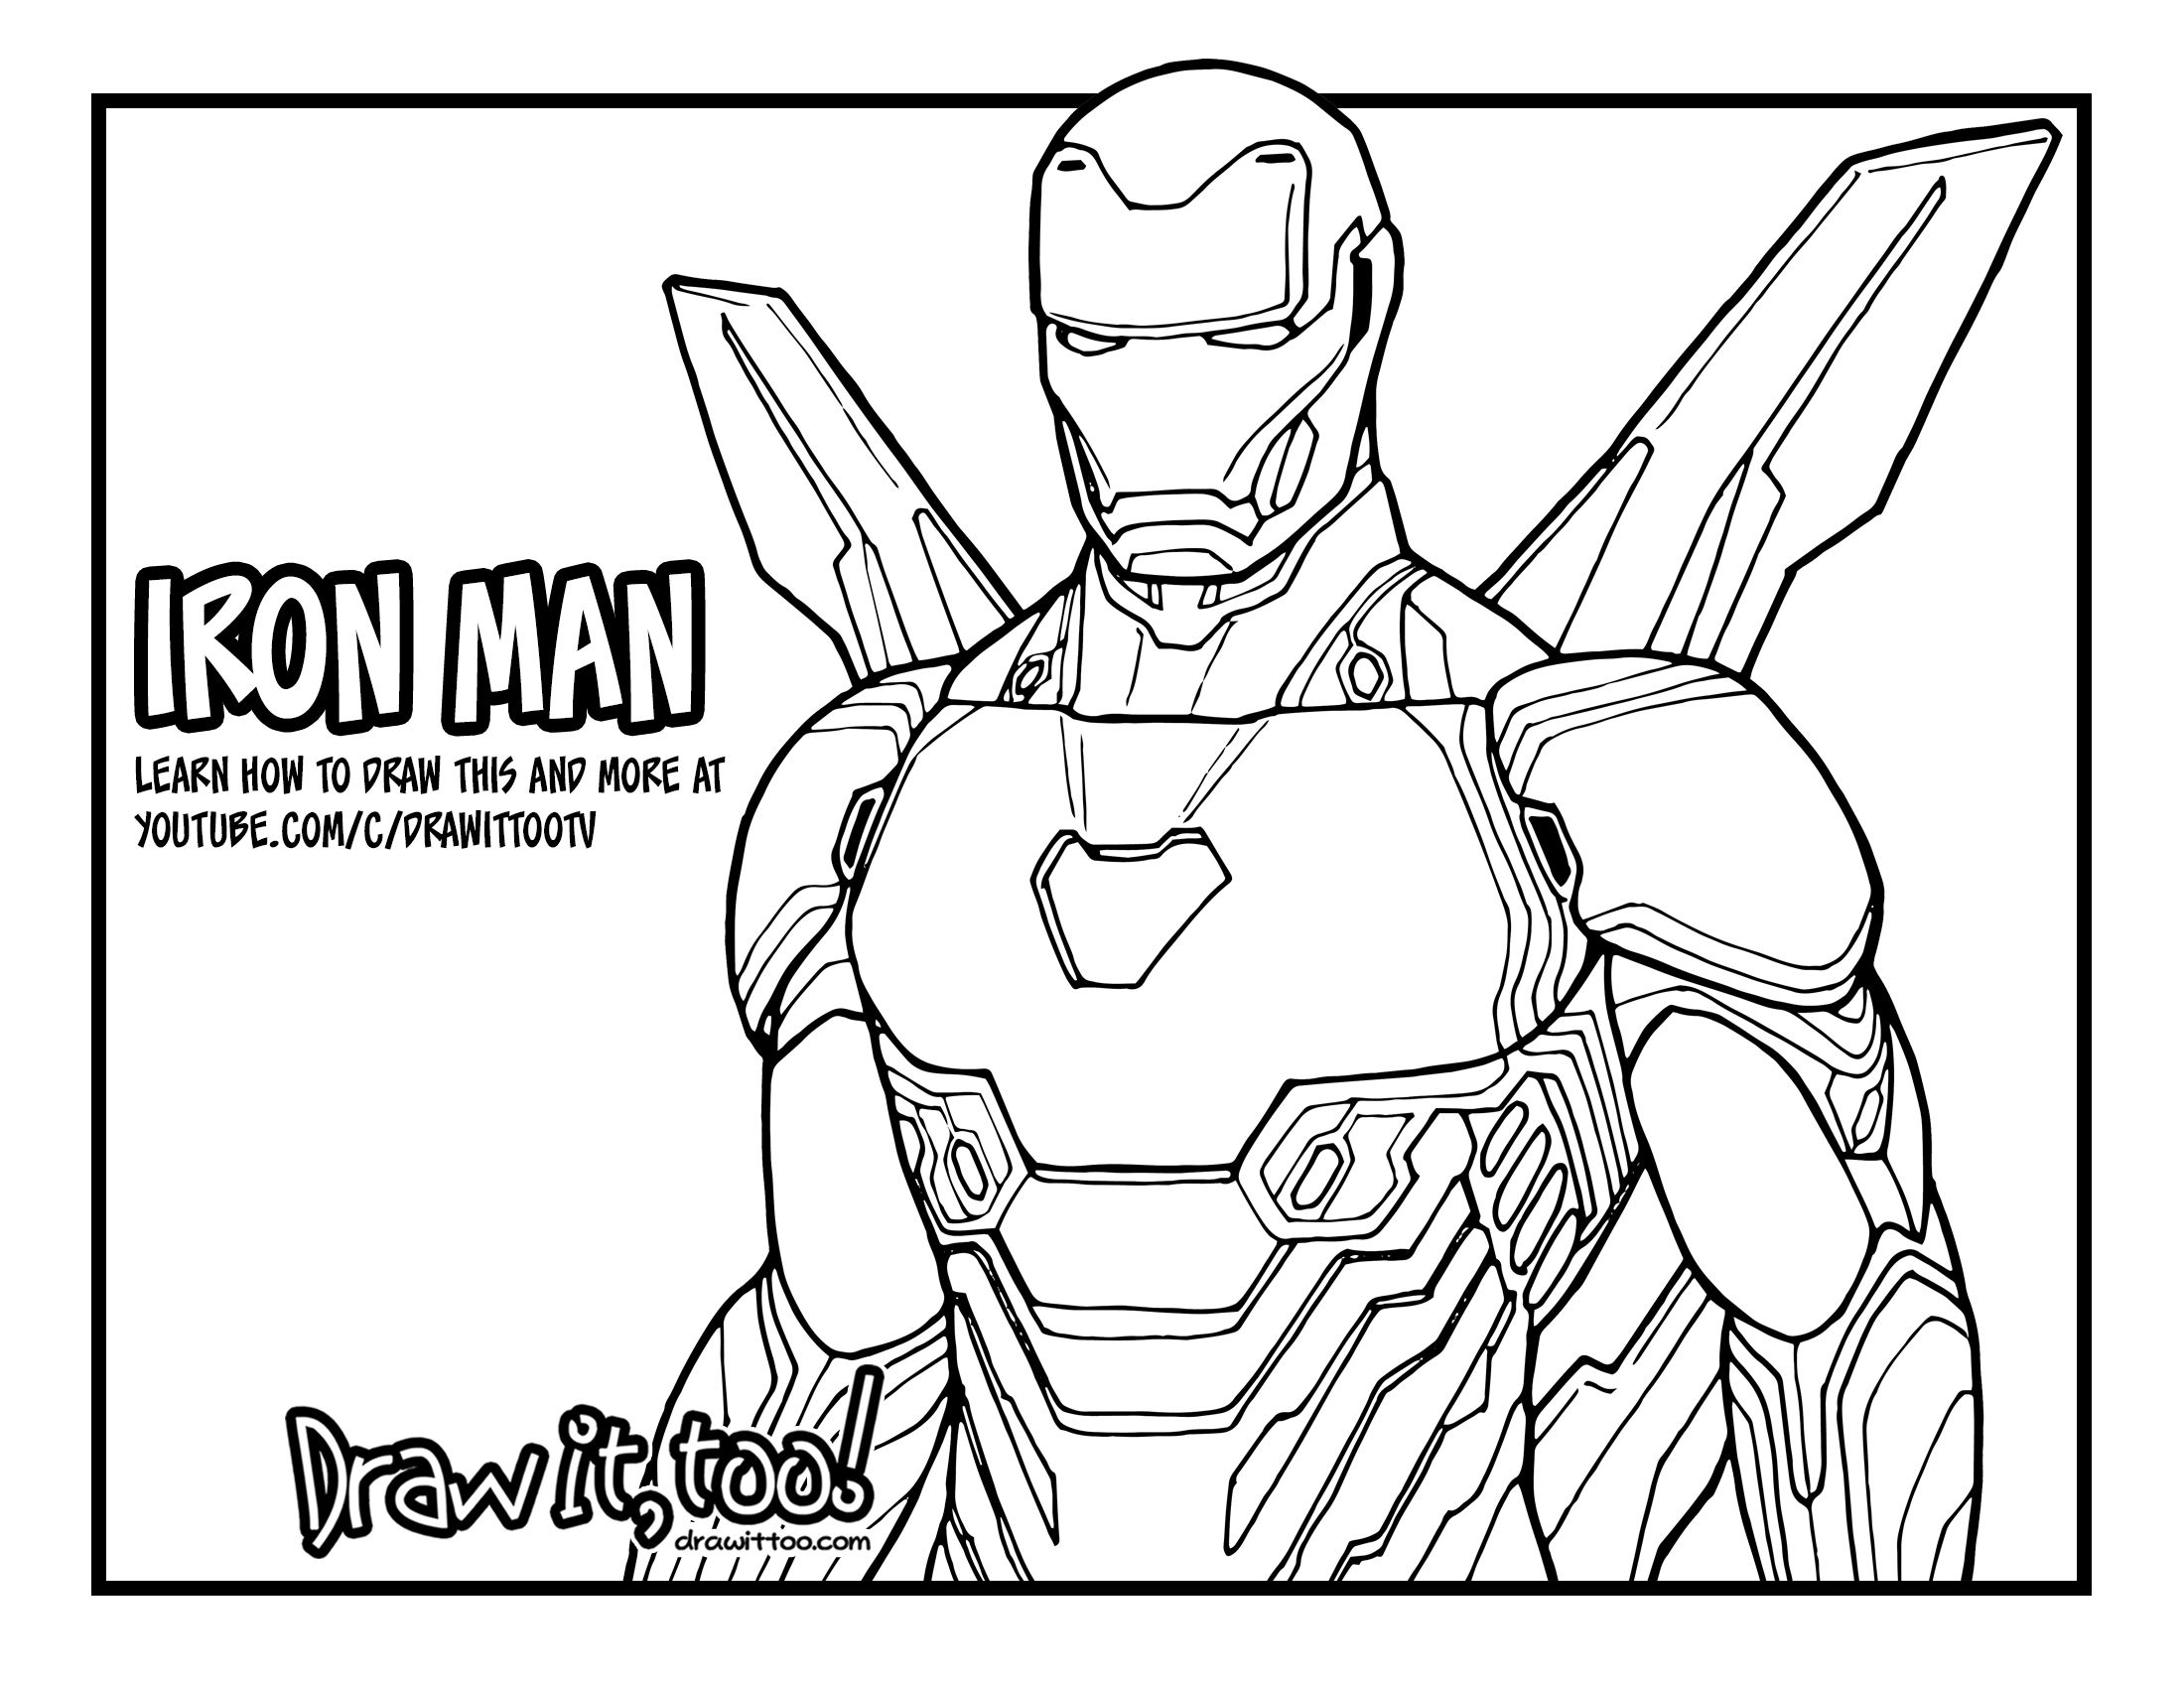 How To Draw Iron Man Avengers Infinity War Drawing Tutorial Draw It Too Avengers Coloring Pages Avengers Coloring Superhero Coloring Pages